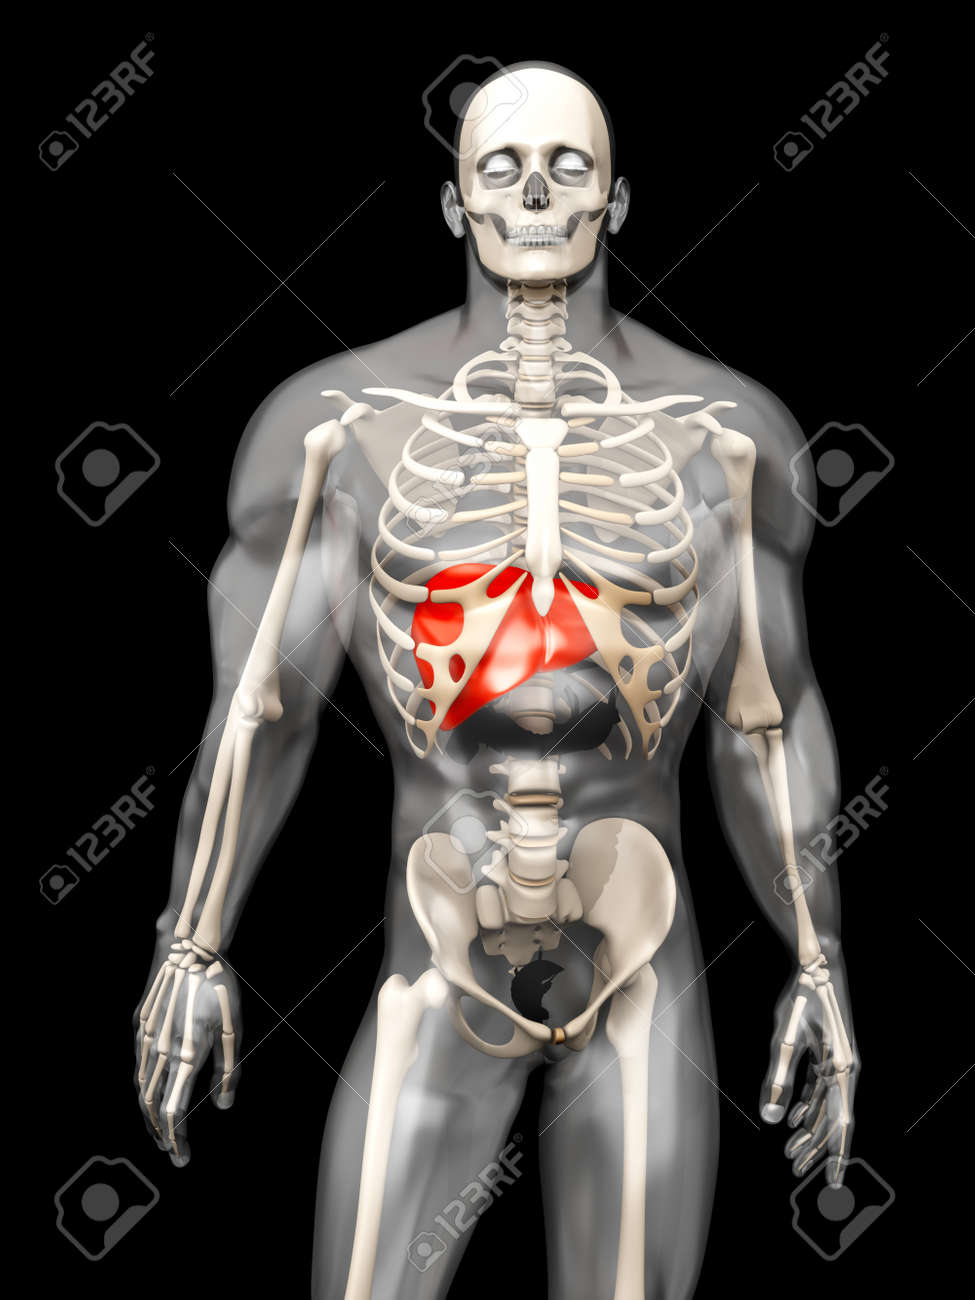 3d Visualization Of The Human Anatomy The Liver In A Semi